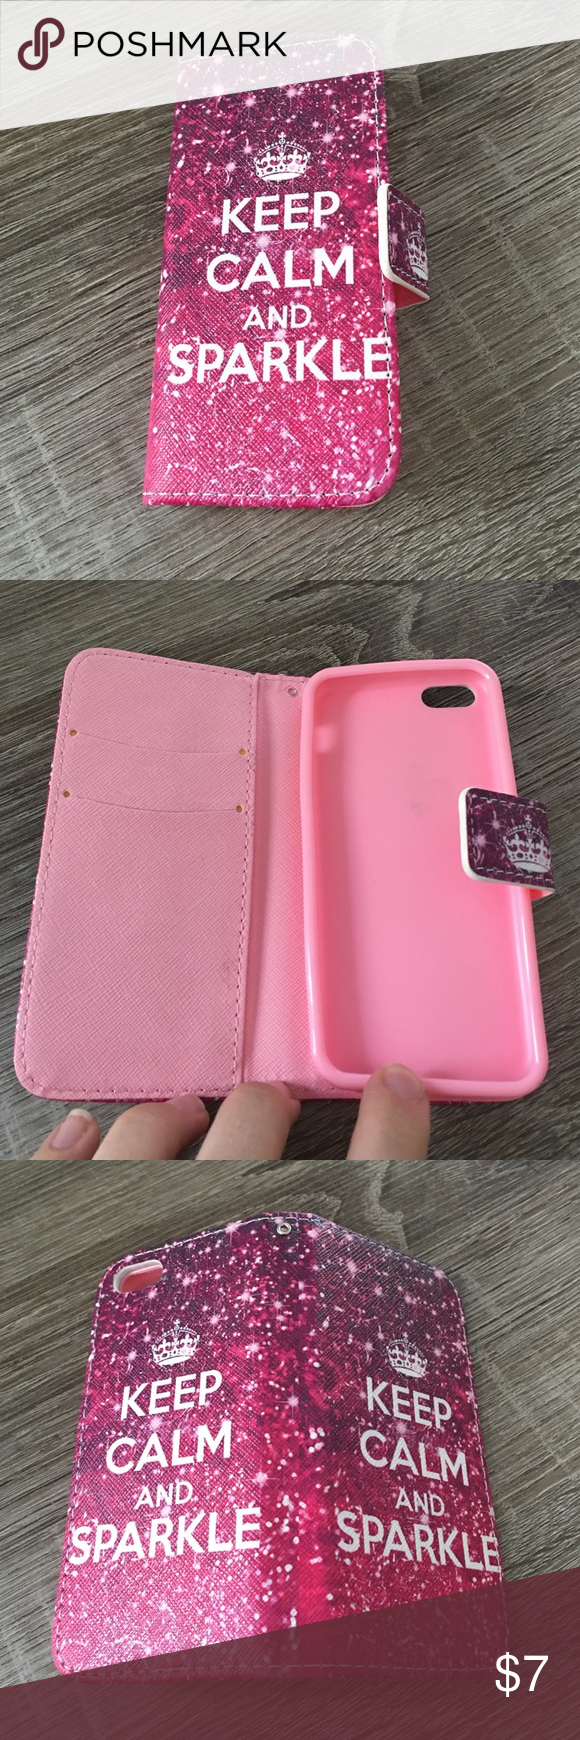 🌹Iphone 5c case Iphone 5c case. Magnetic closure. Slots for 2 cards Accessories Phone Cases